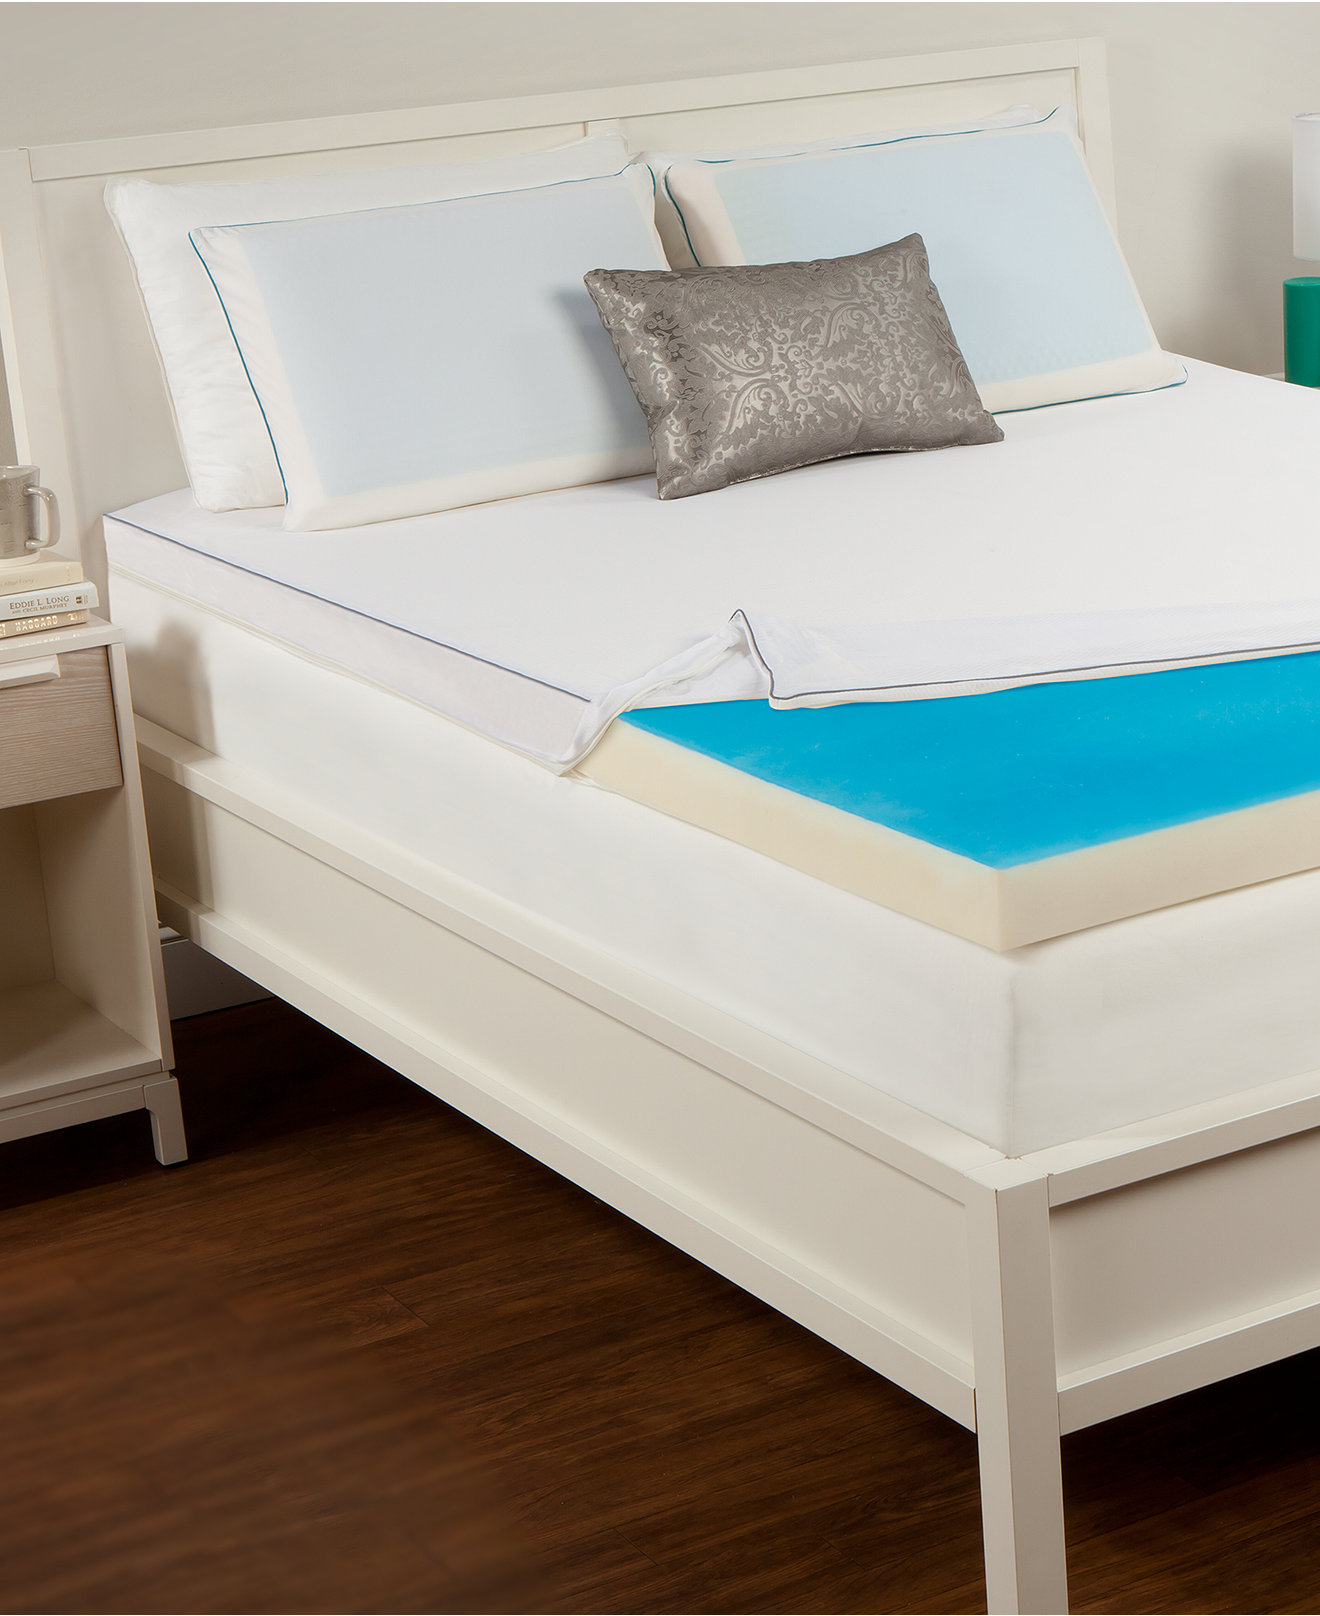 Mattress Cover For Tempurpedic Bed